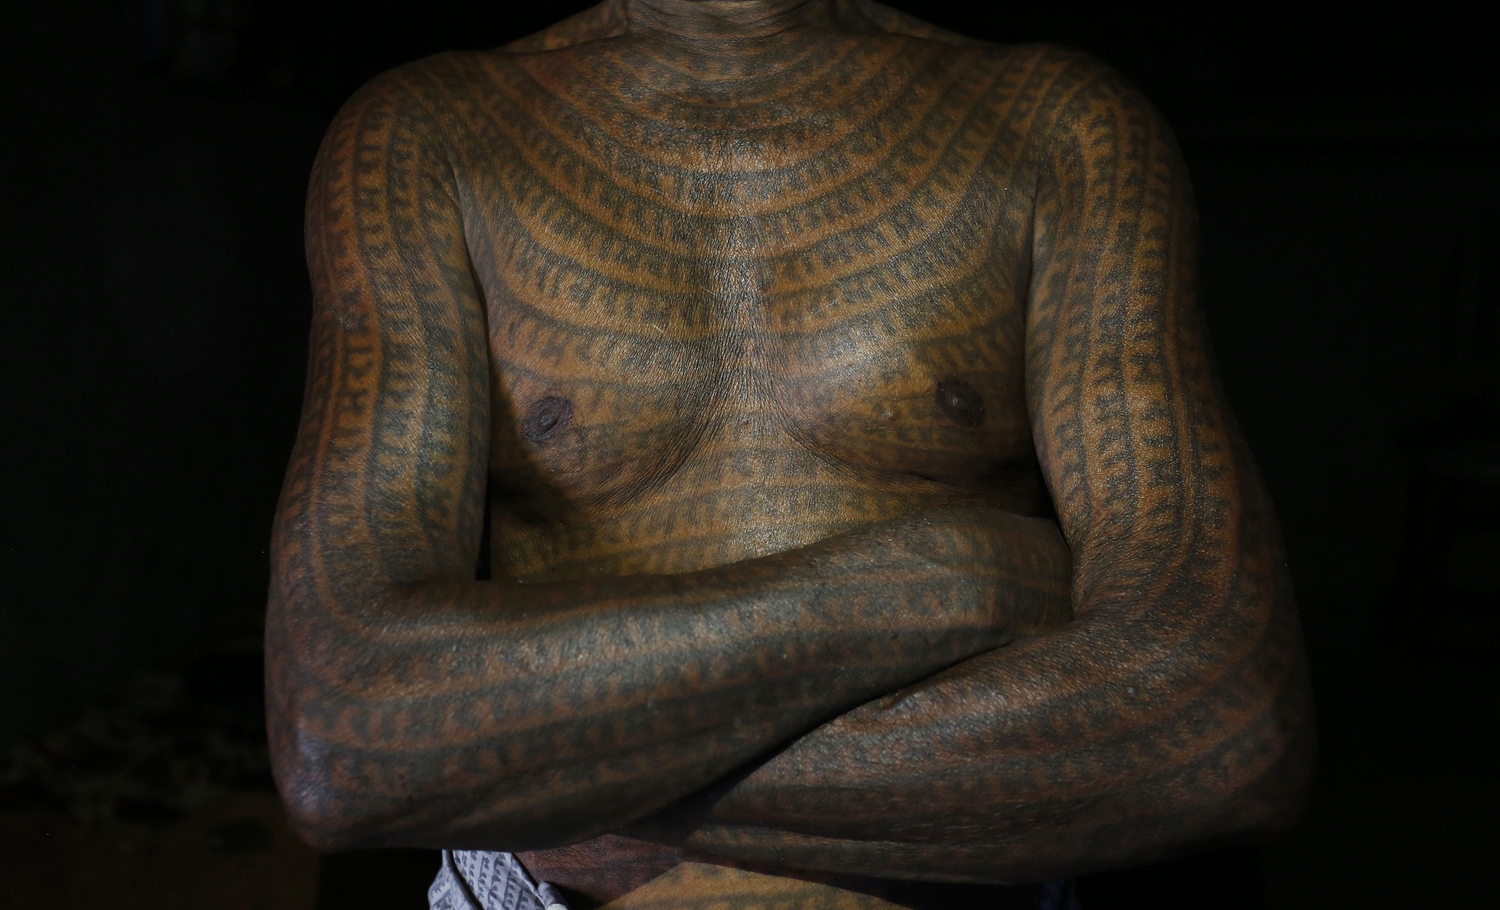 Tandon a follower of Ramnami Samaj who has tattoos God 'Ram' name on his full body poses for a picture inside his house at the village Jamgahan